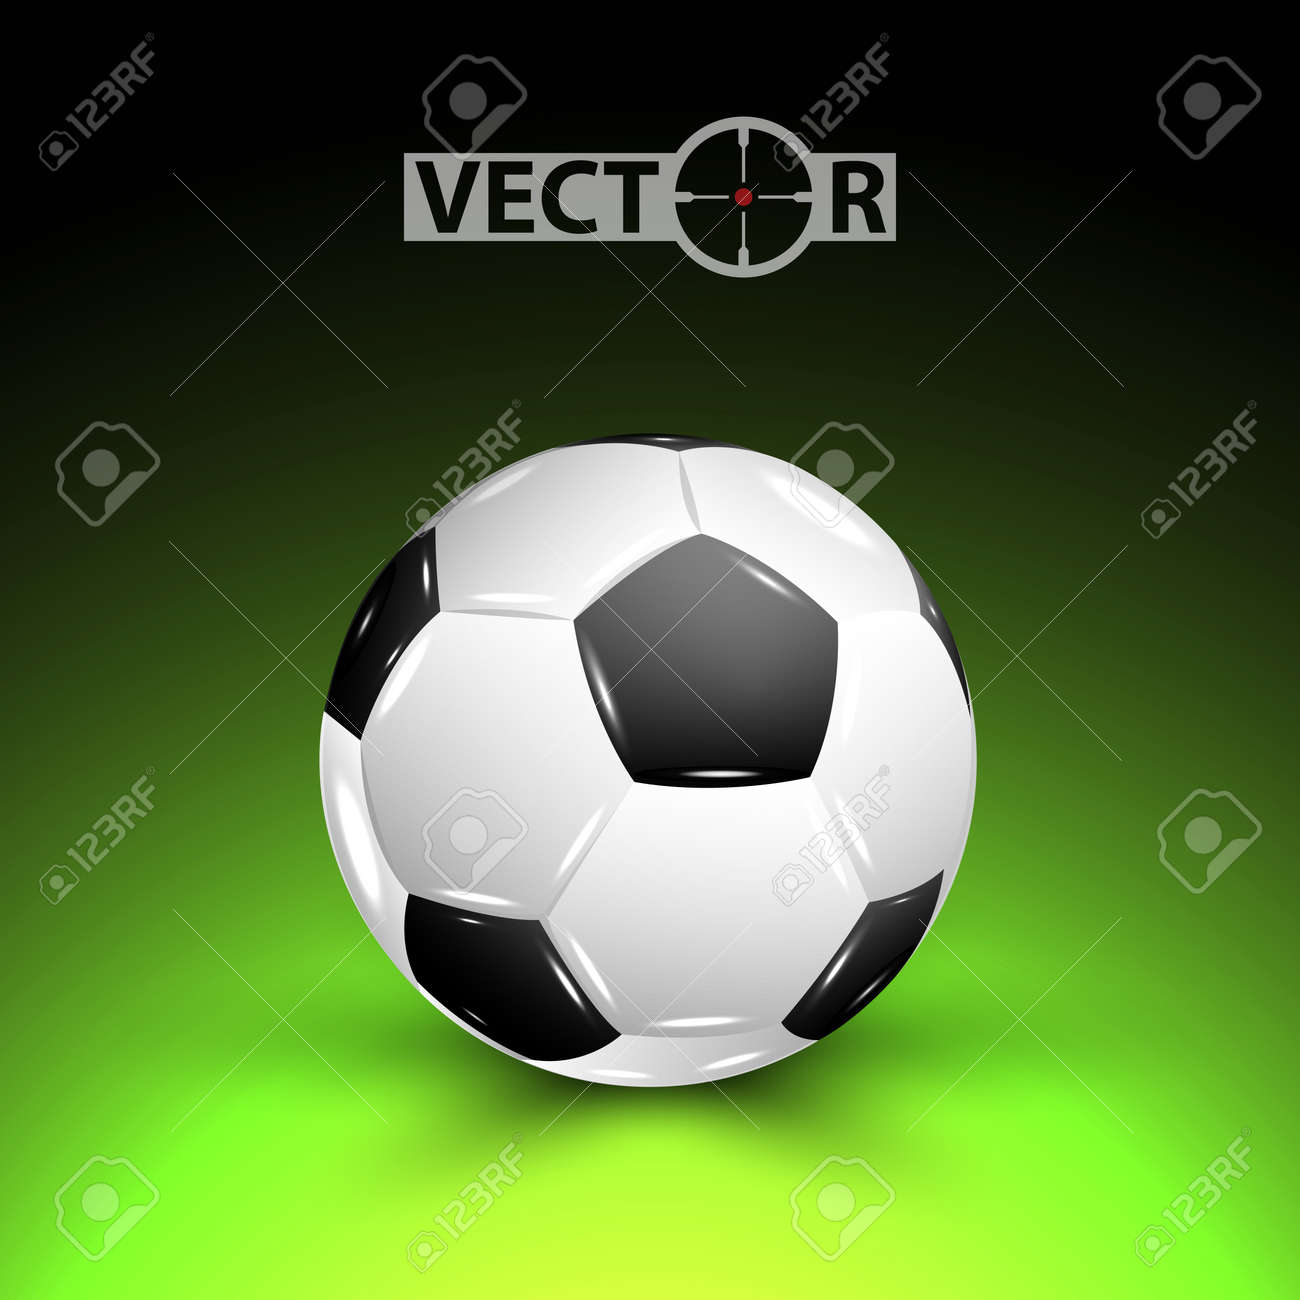 Vector soccer ball with shadow on field, vector illustration, eps10, 3 layers Stock Vector - 14241228